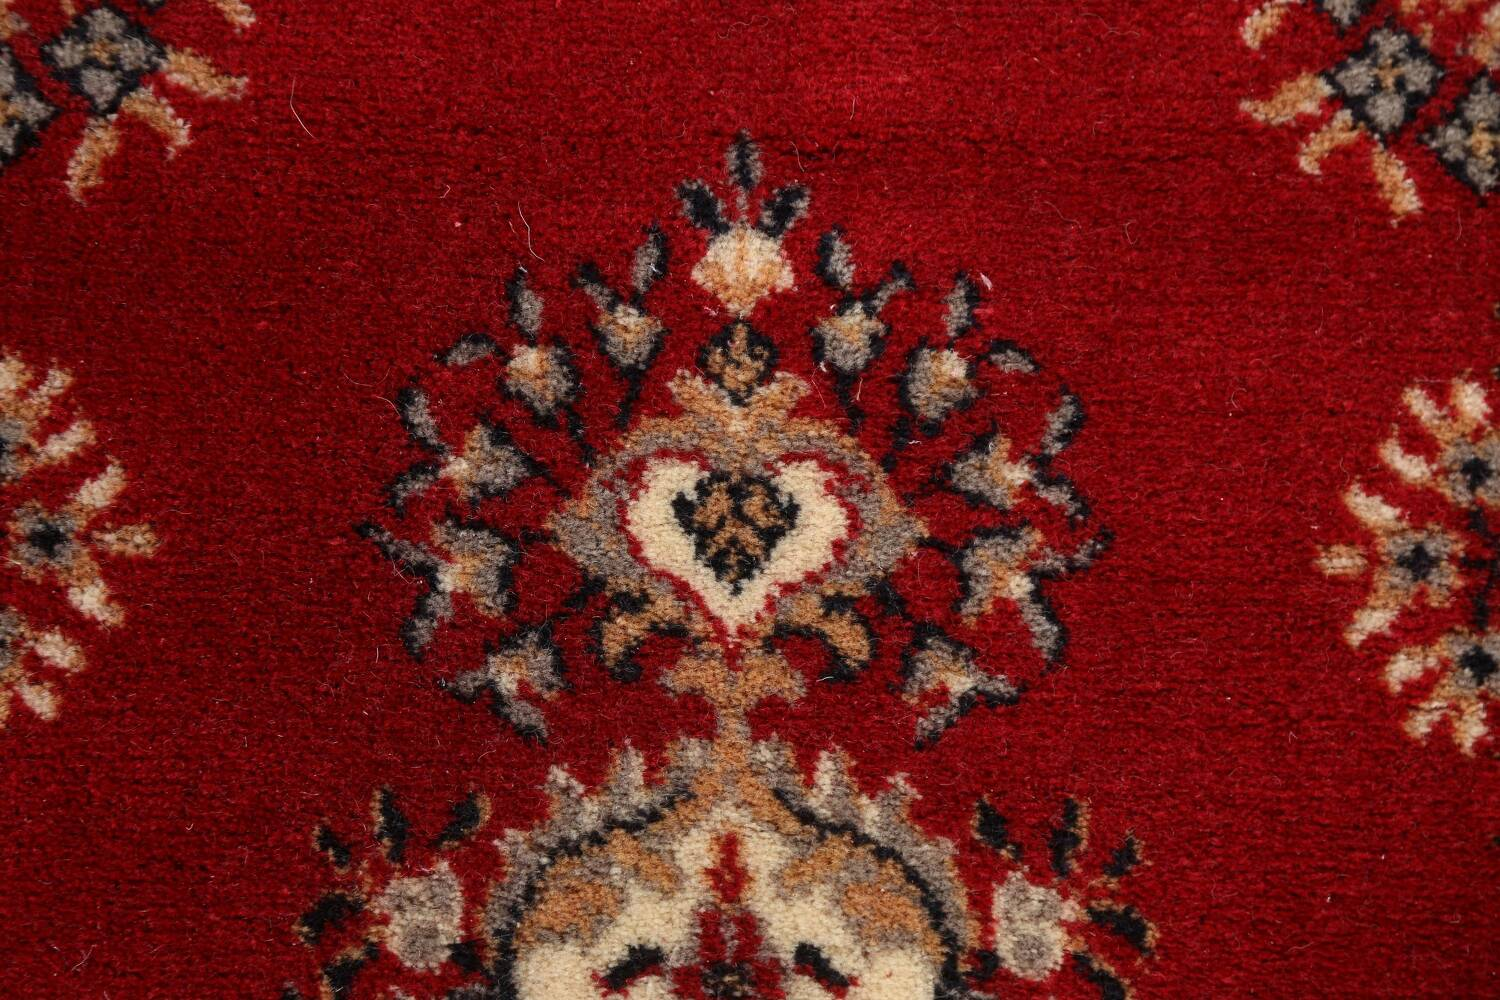 Red Floral Aubusson Oriental Rug 2x6 image 8